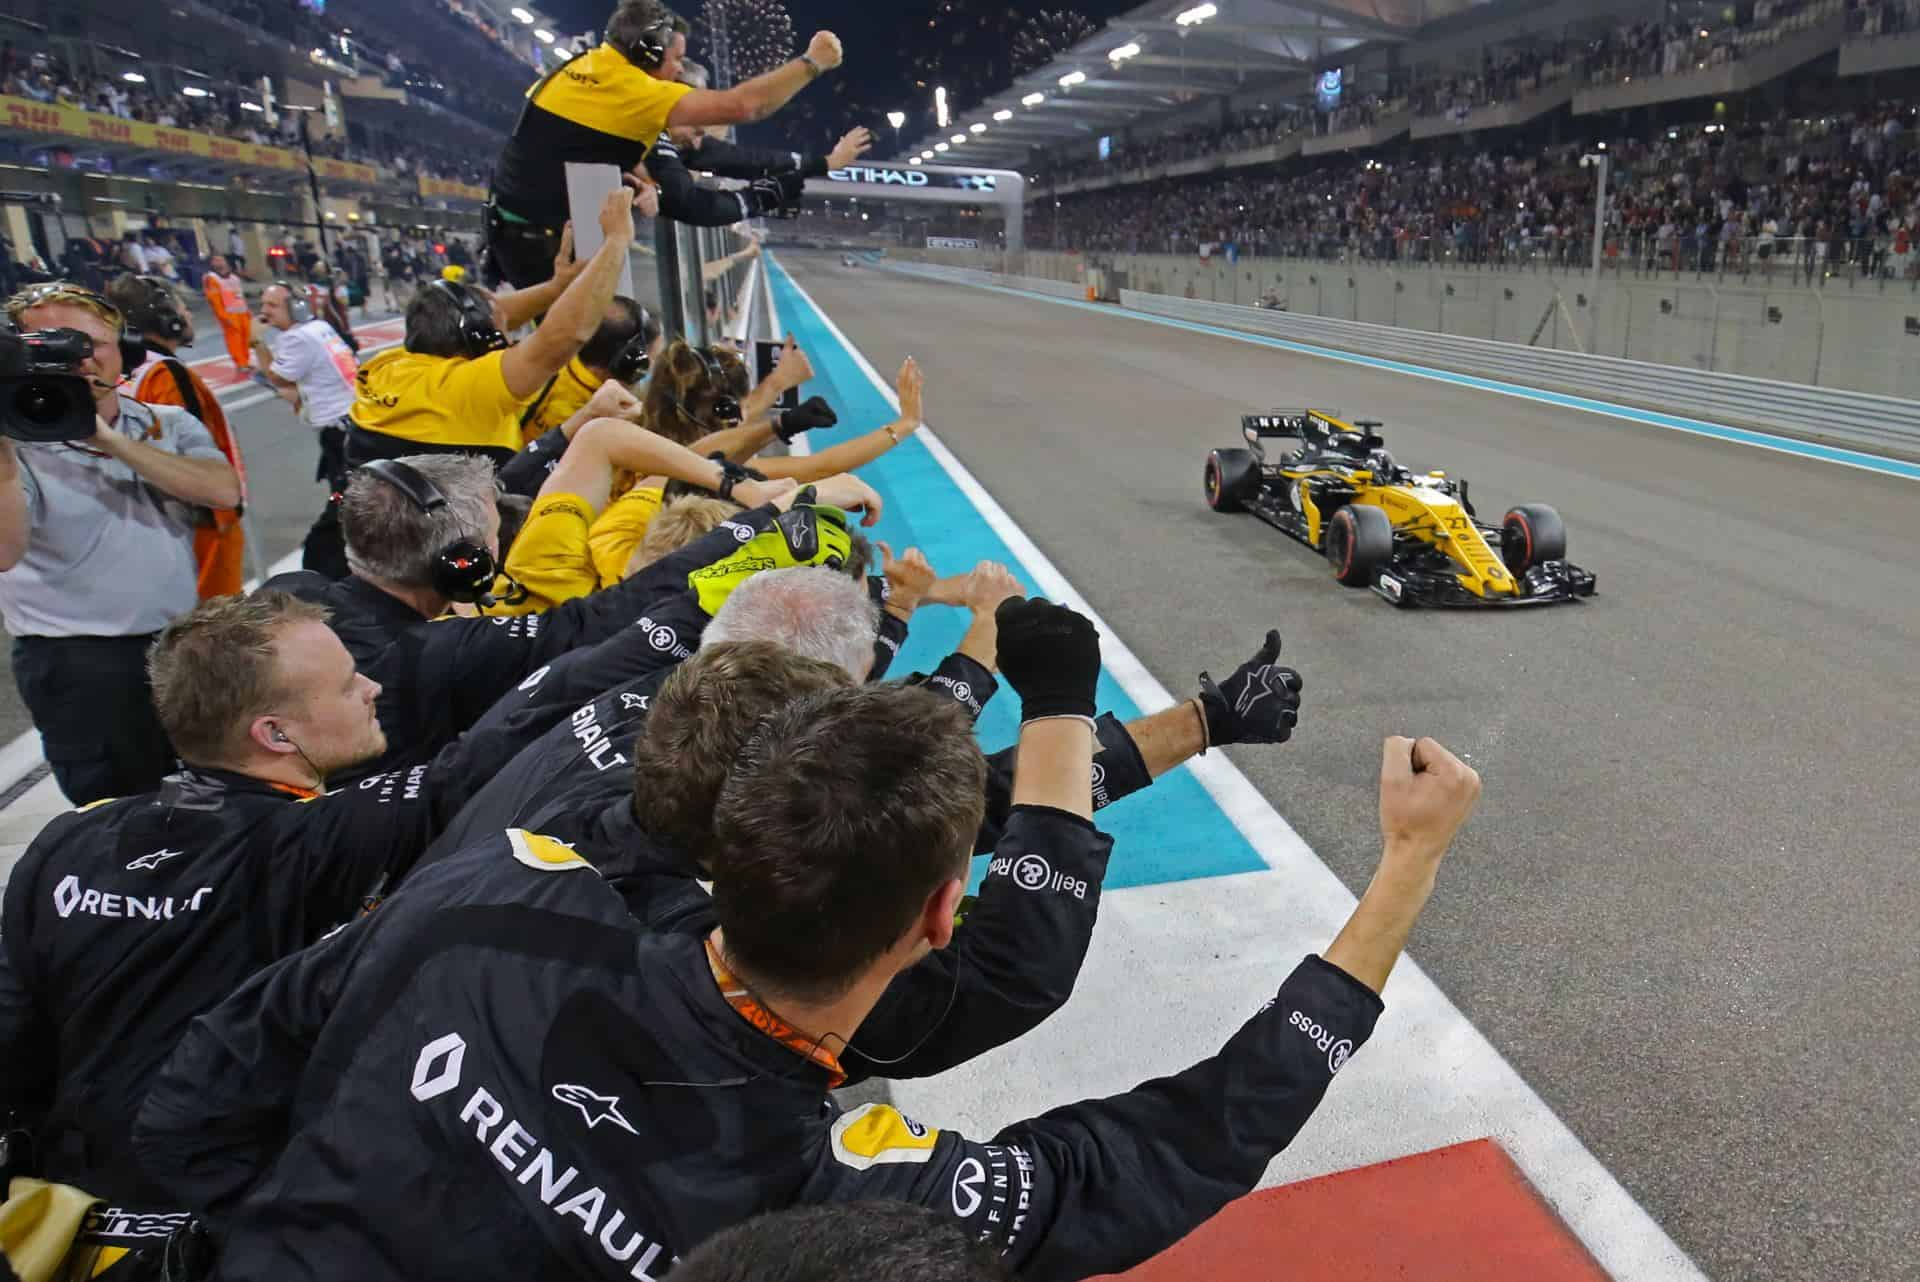 Hulkenberg Abu DHabi F1 2017 celebrating sixth place Photo Renault